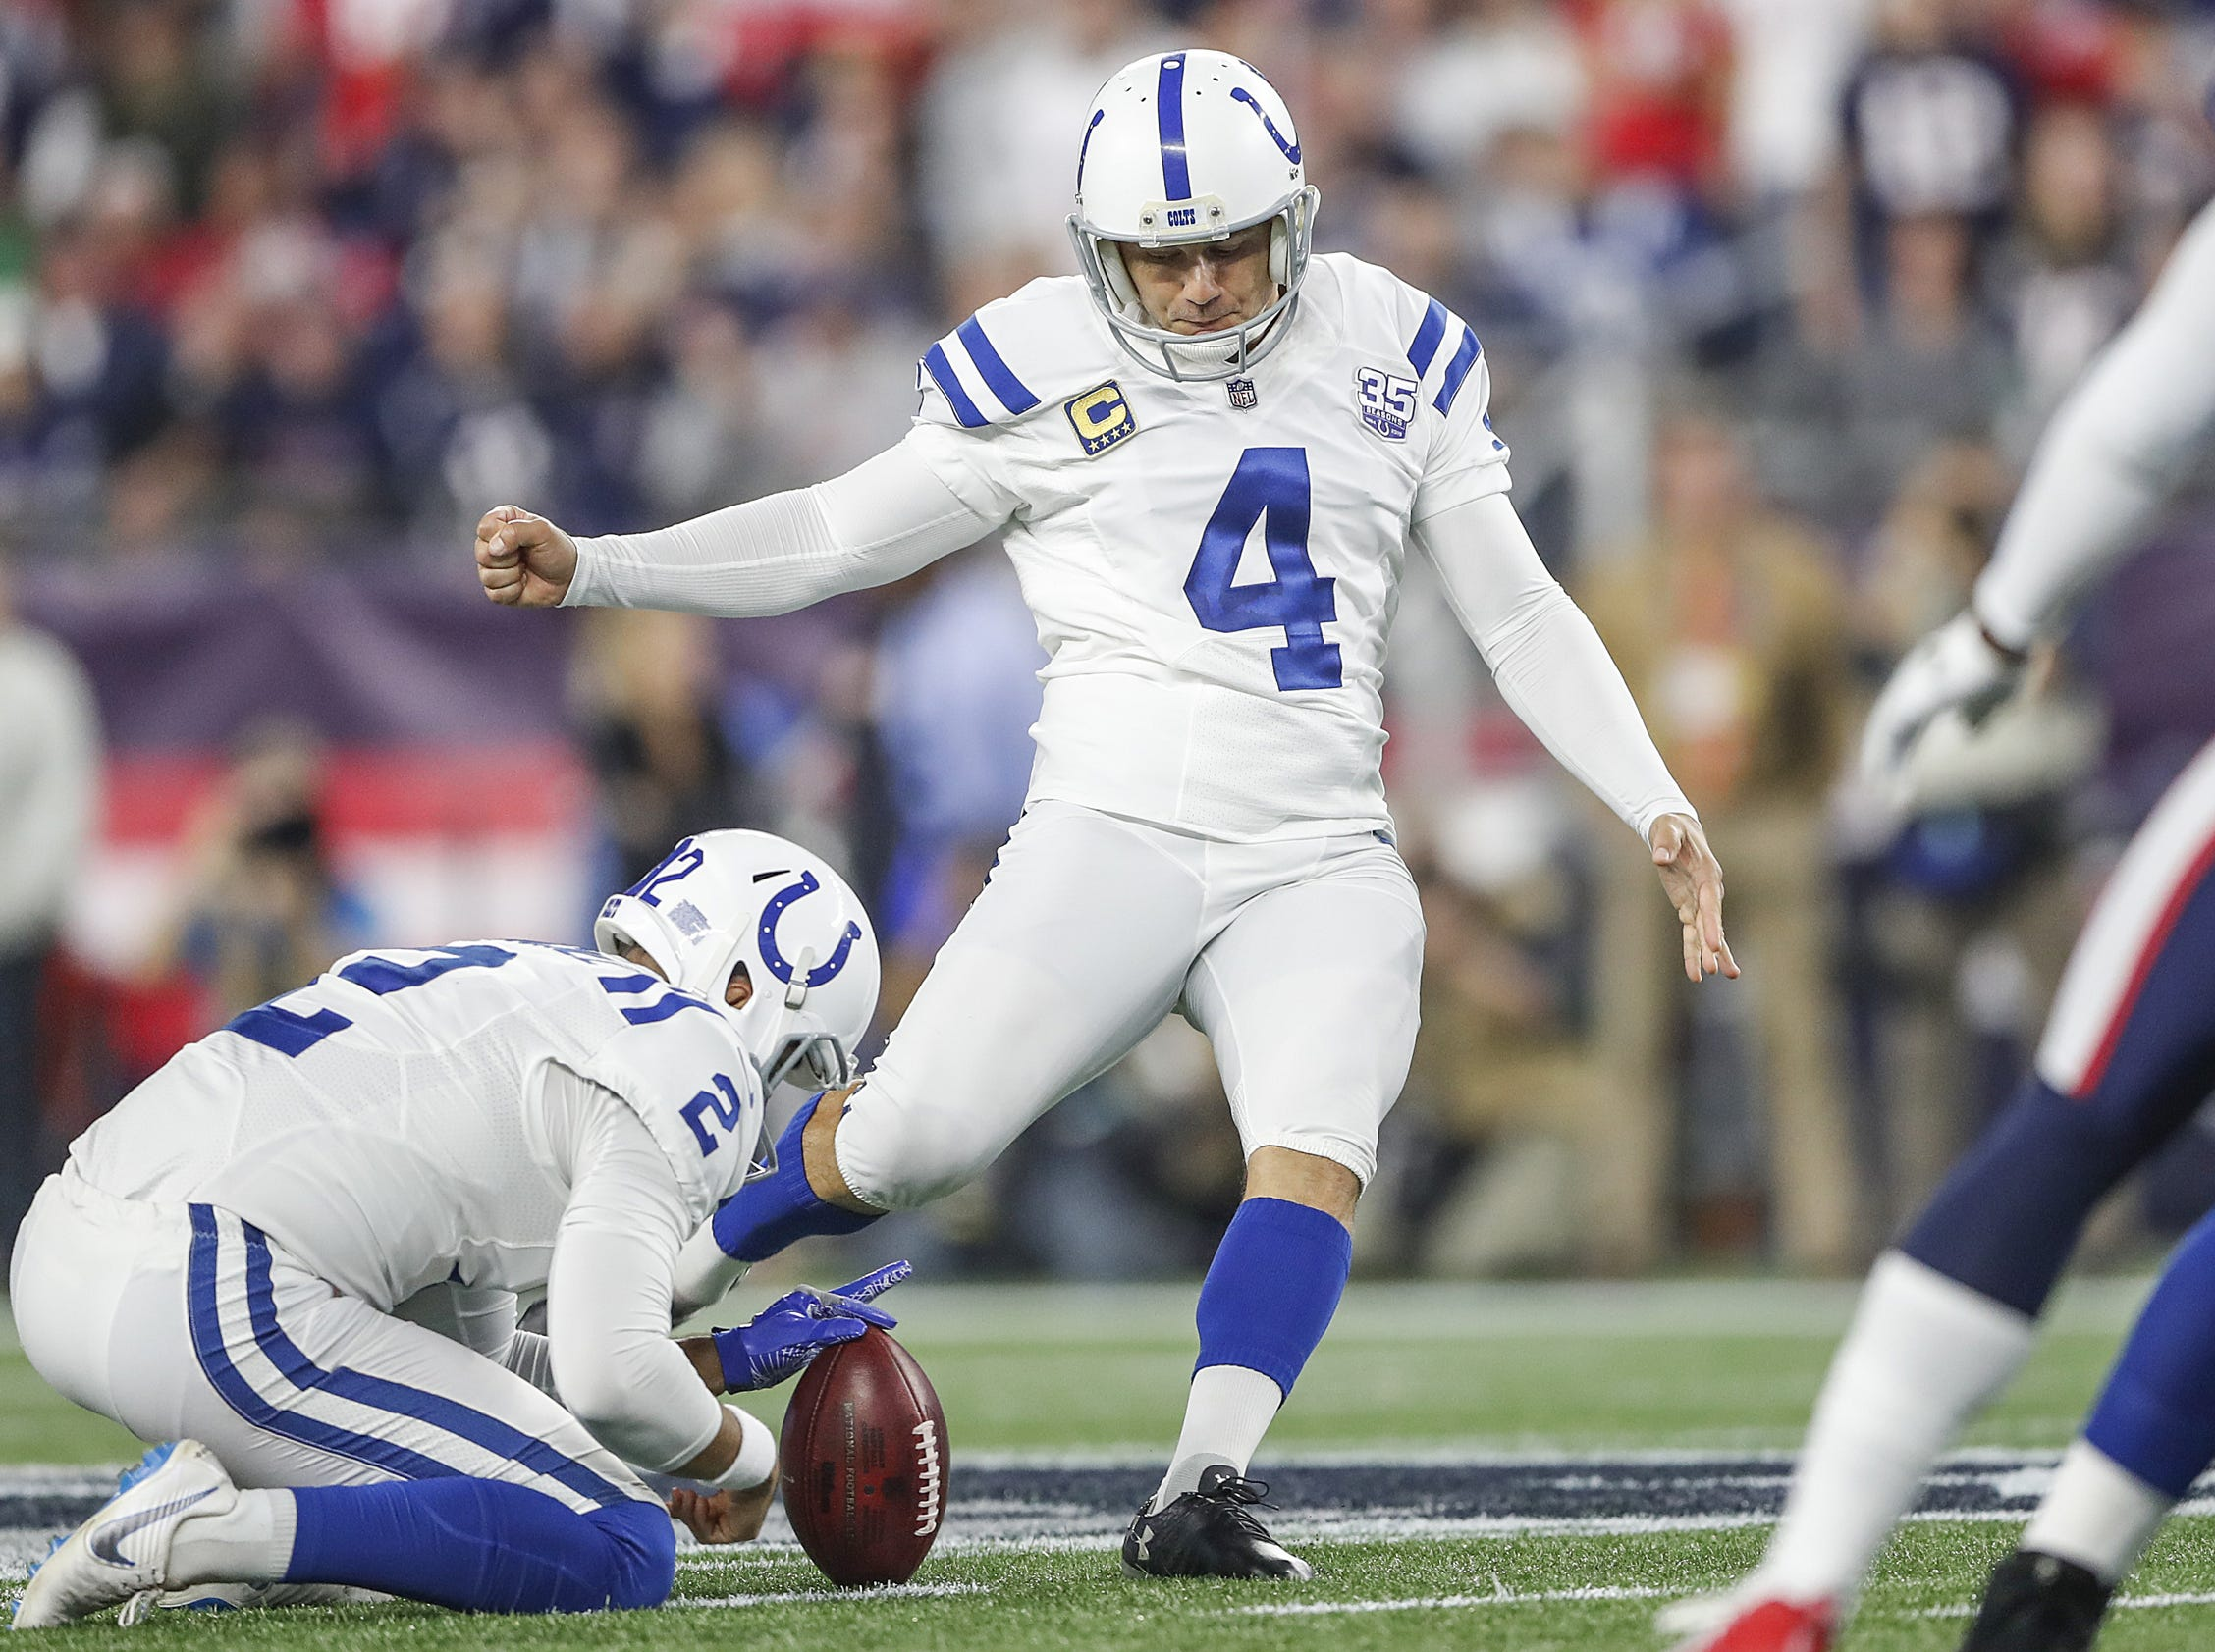 Indianapolis Colts kicker Adam Vinatieri (4) kicks a 54-yard field goal in the second quarter at Gillette Stadium in Foxborough, Mass., Thursday, Oct. 4, 2018.